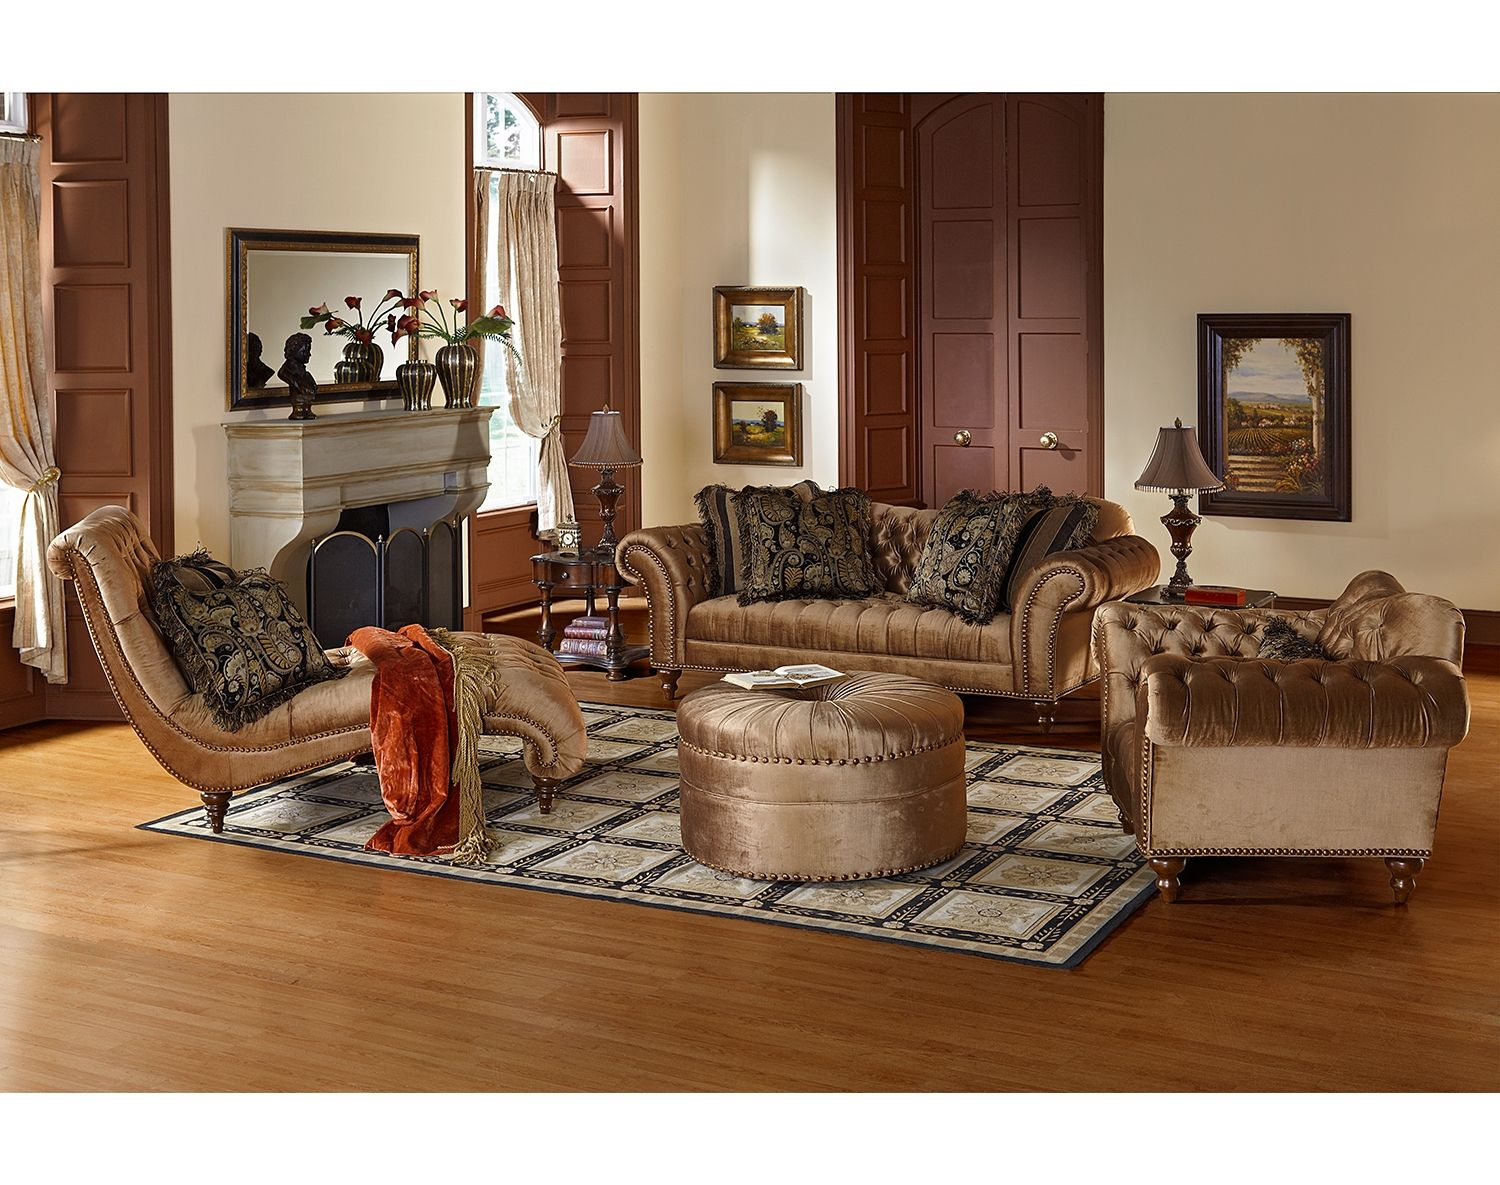 Decoration Chesterfield Shine On. With Its Unabashed Grandeur, The Brittney